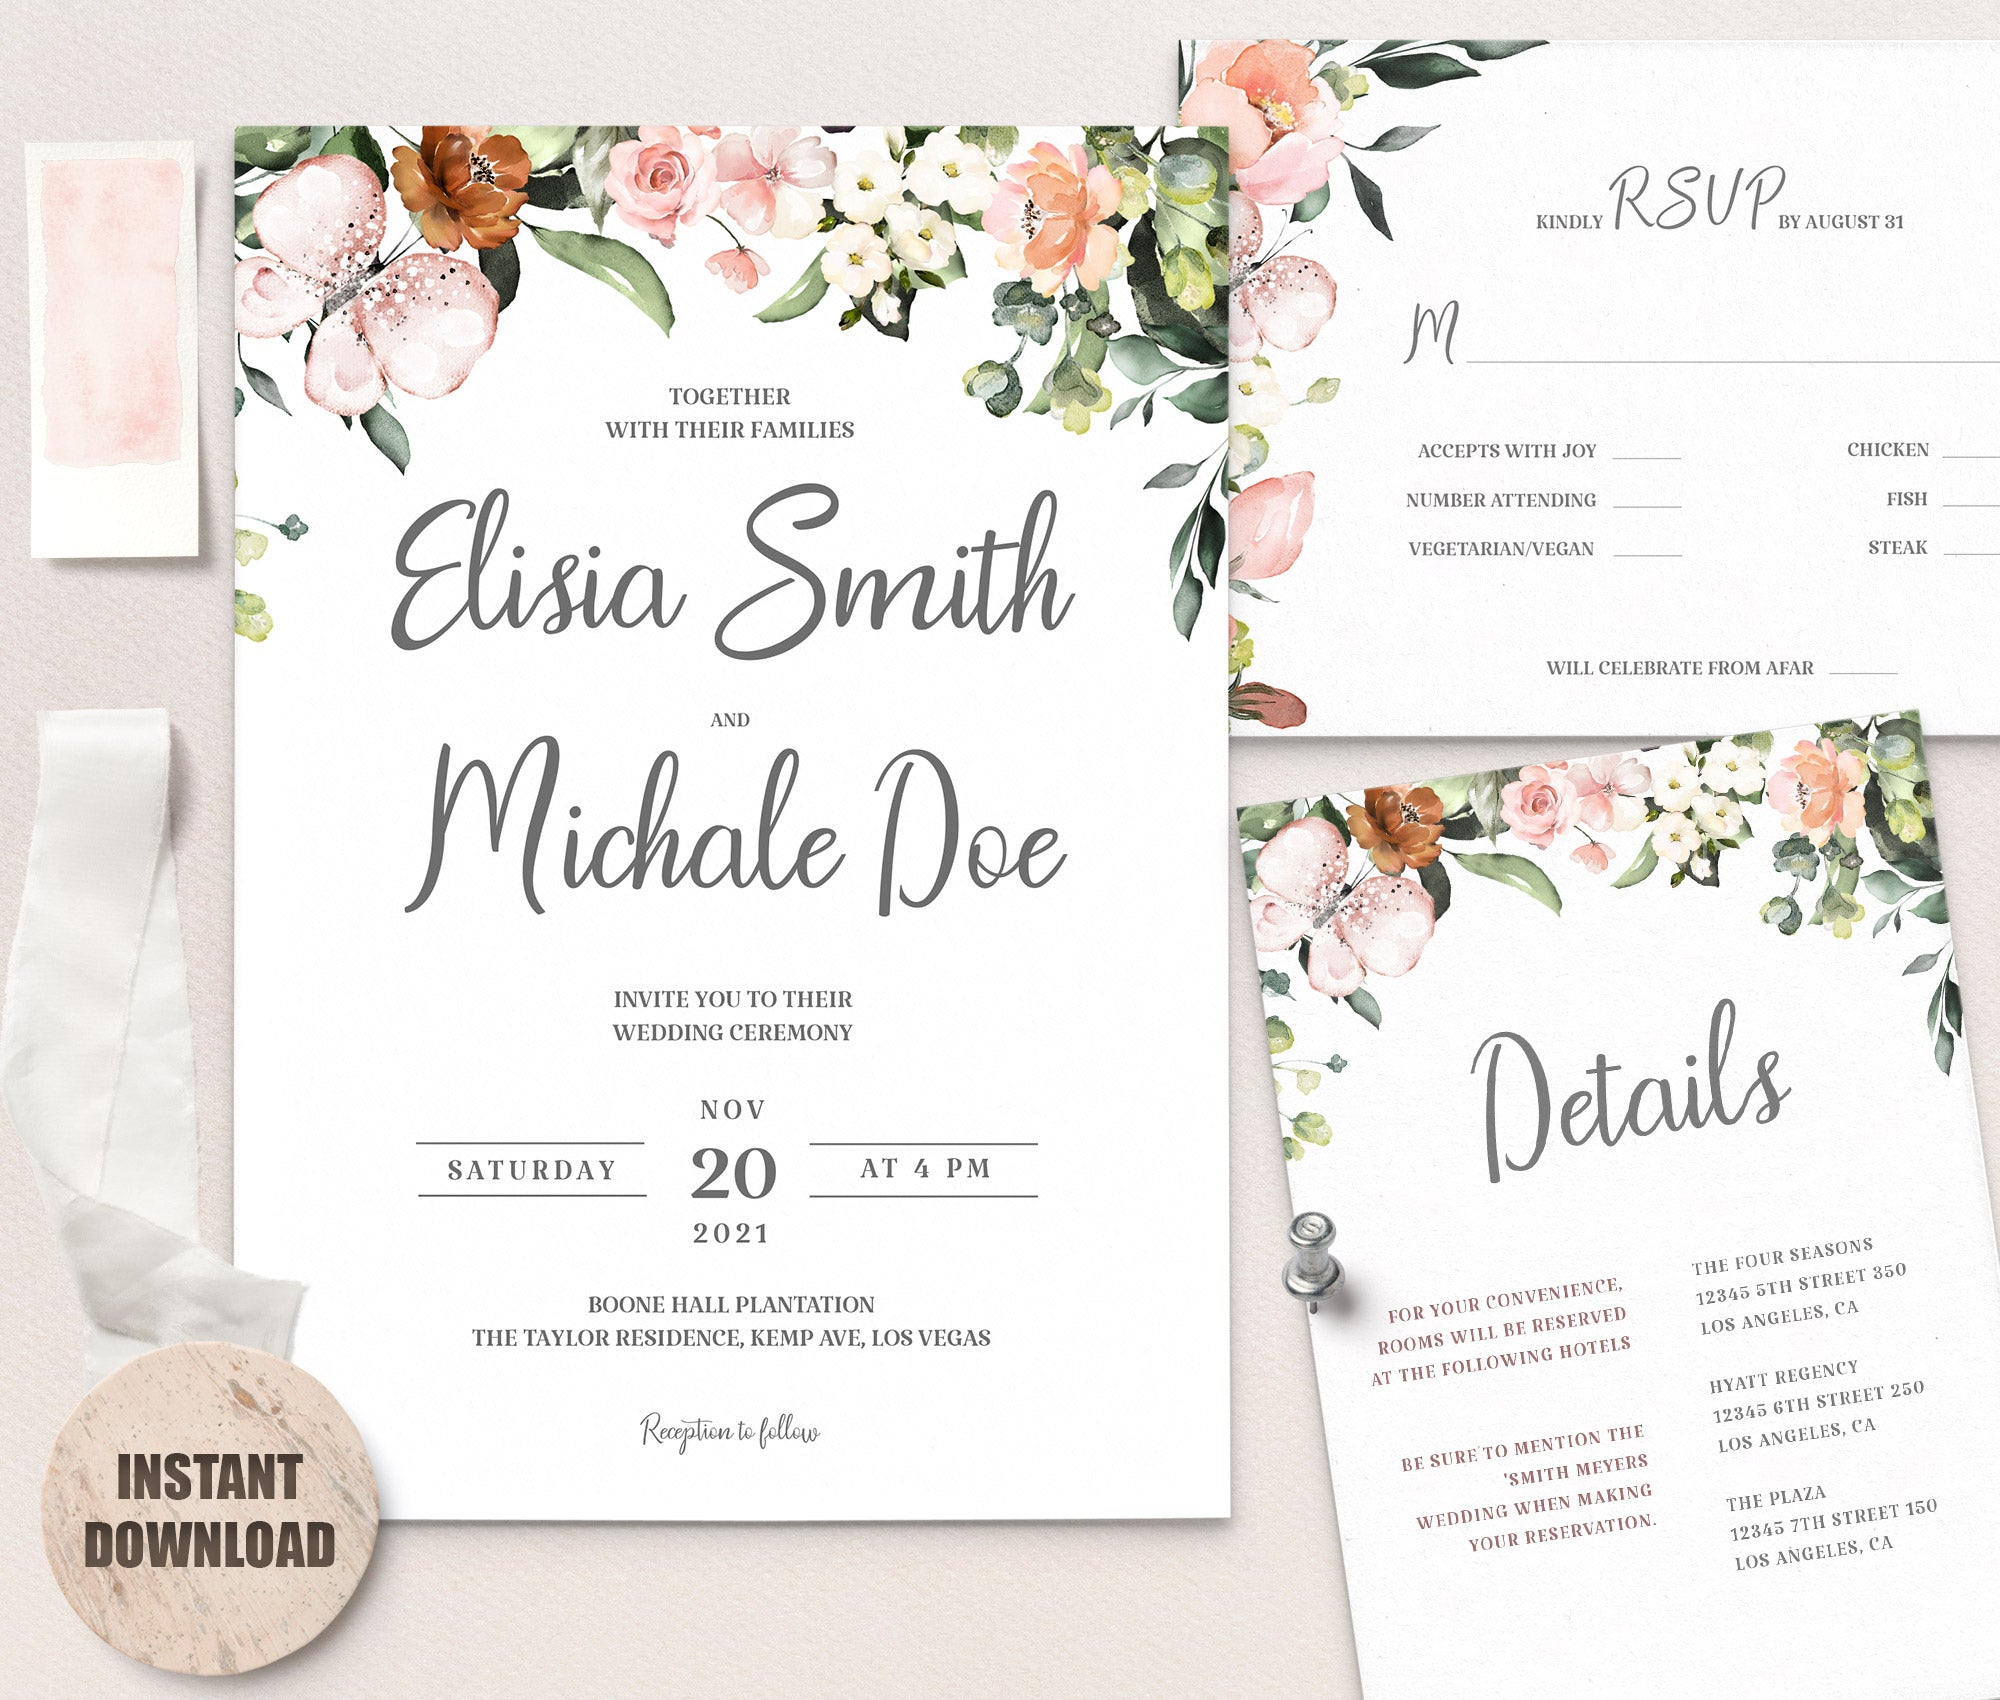 LOVAL Wedding Template Bundles set 3